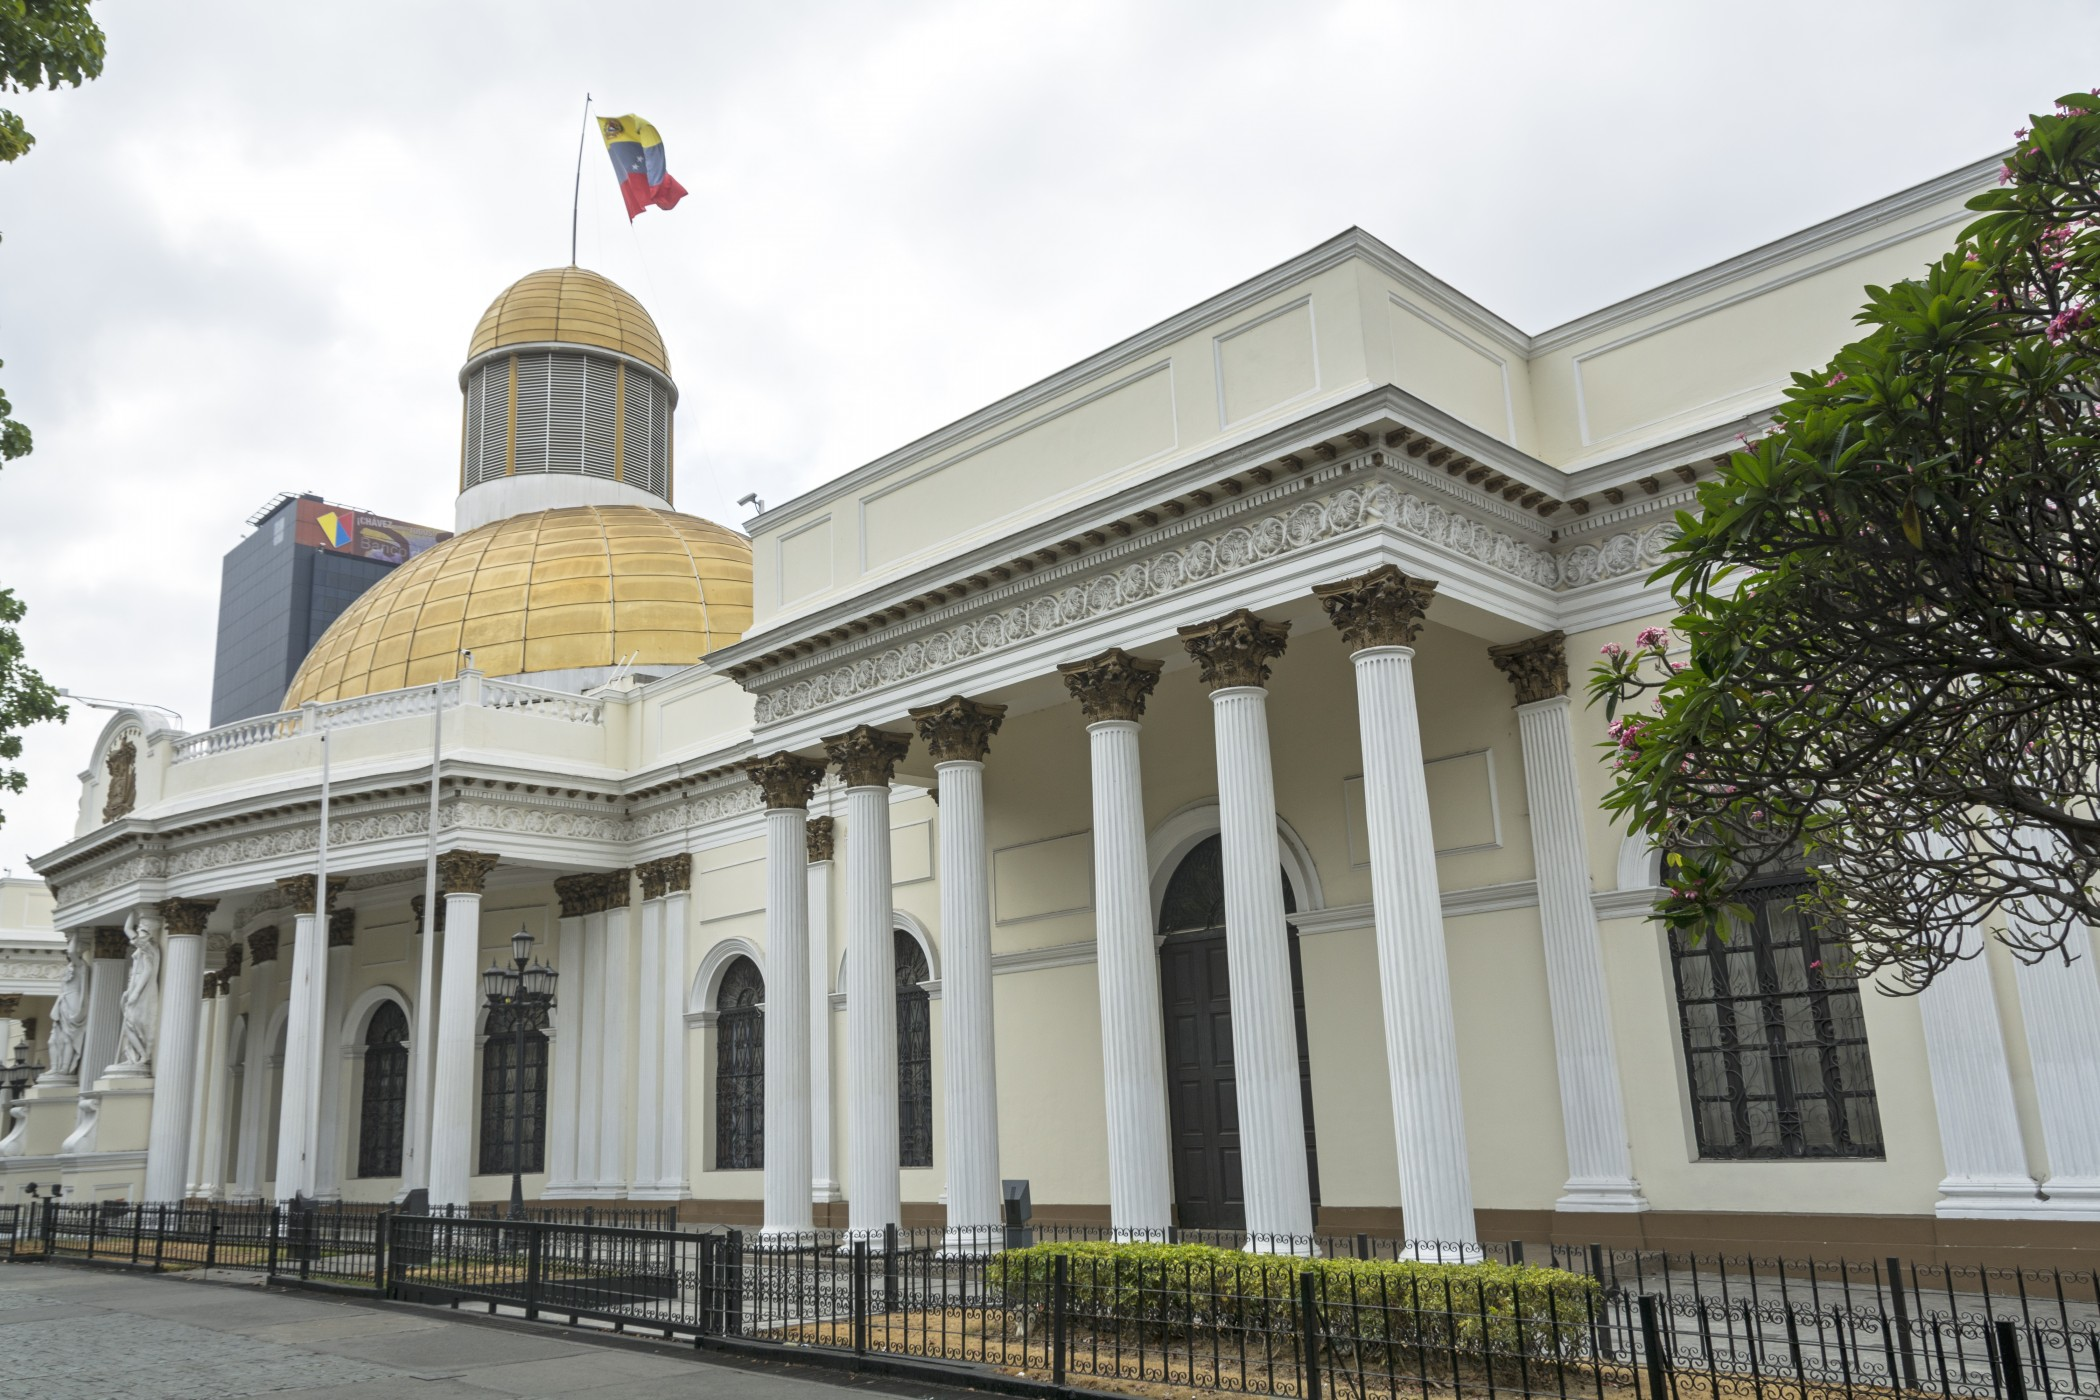 Caracas, Venezuela- March 25, 2016: The Federal Legislative Palace, also known as the Capitol, is a historic building in Caracas, Venezuela, which now houses the National Assembly.